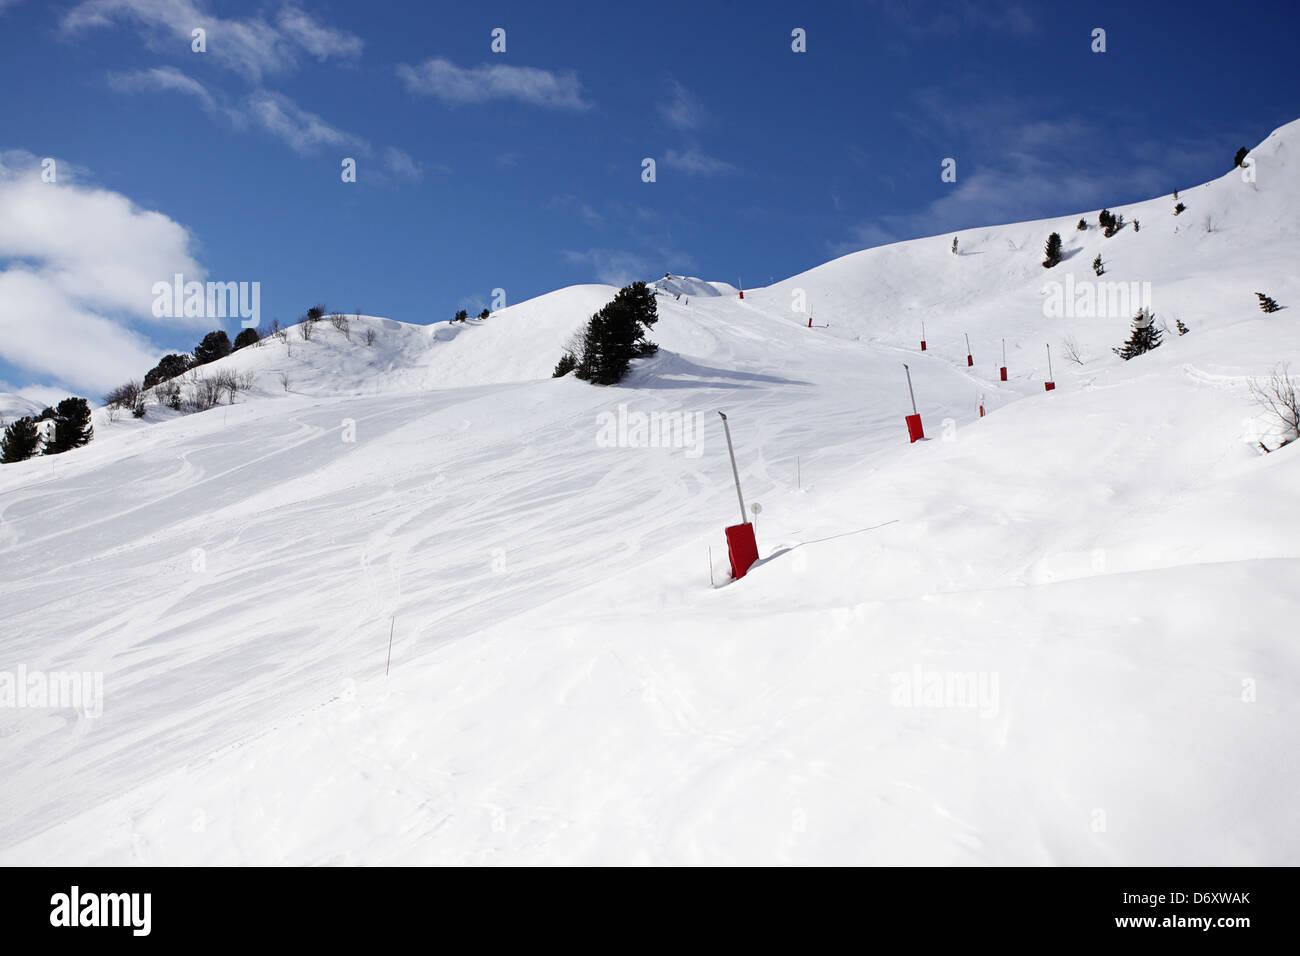 A lovely ski run early morning with freshly pisted snow and clear blue skies. Skiing in Meribel, France - Stock Image